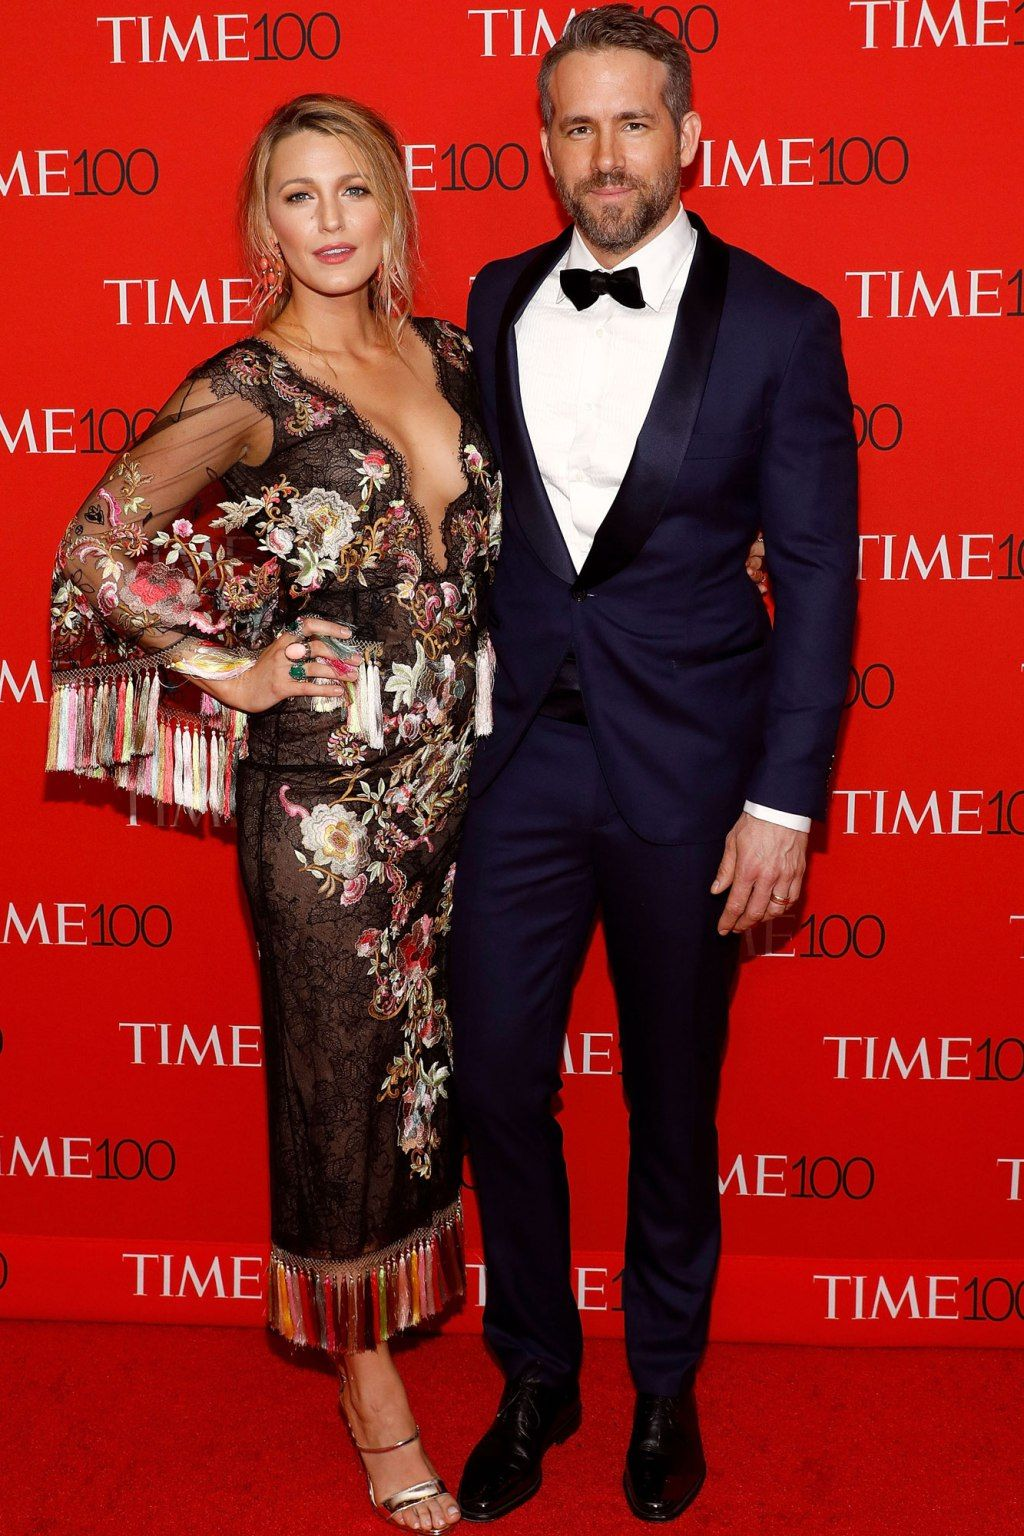 Ryan Reynolds Brings Blake Lively and Mom to TIME 100 Gala